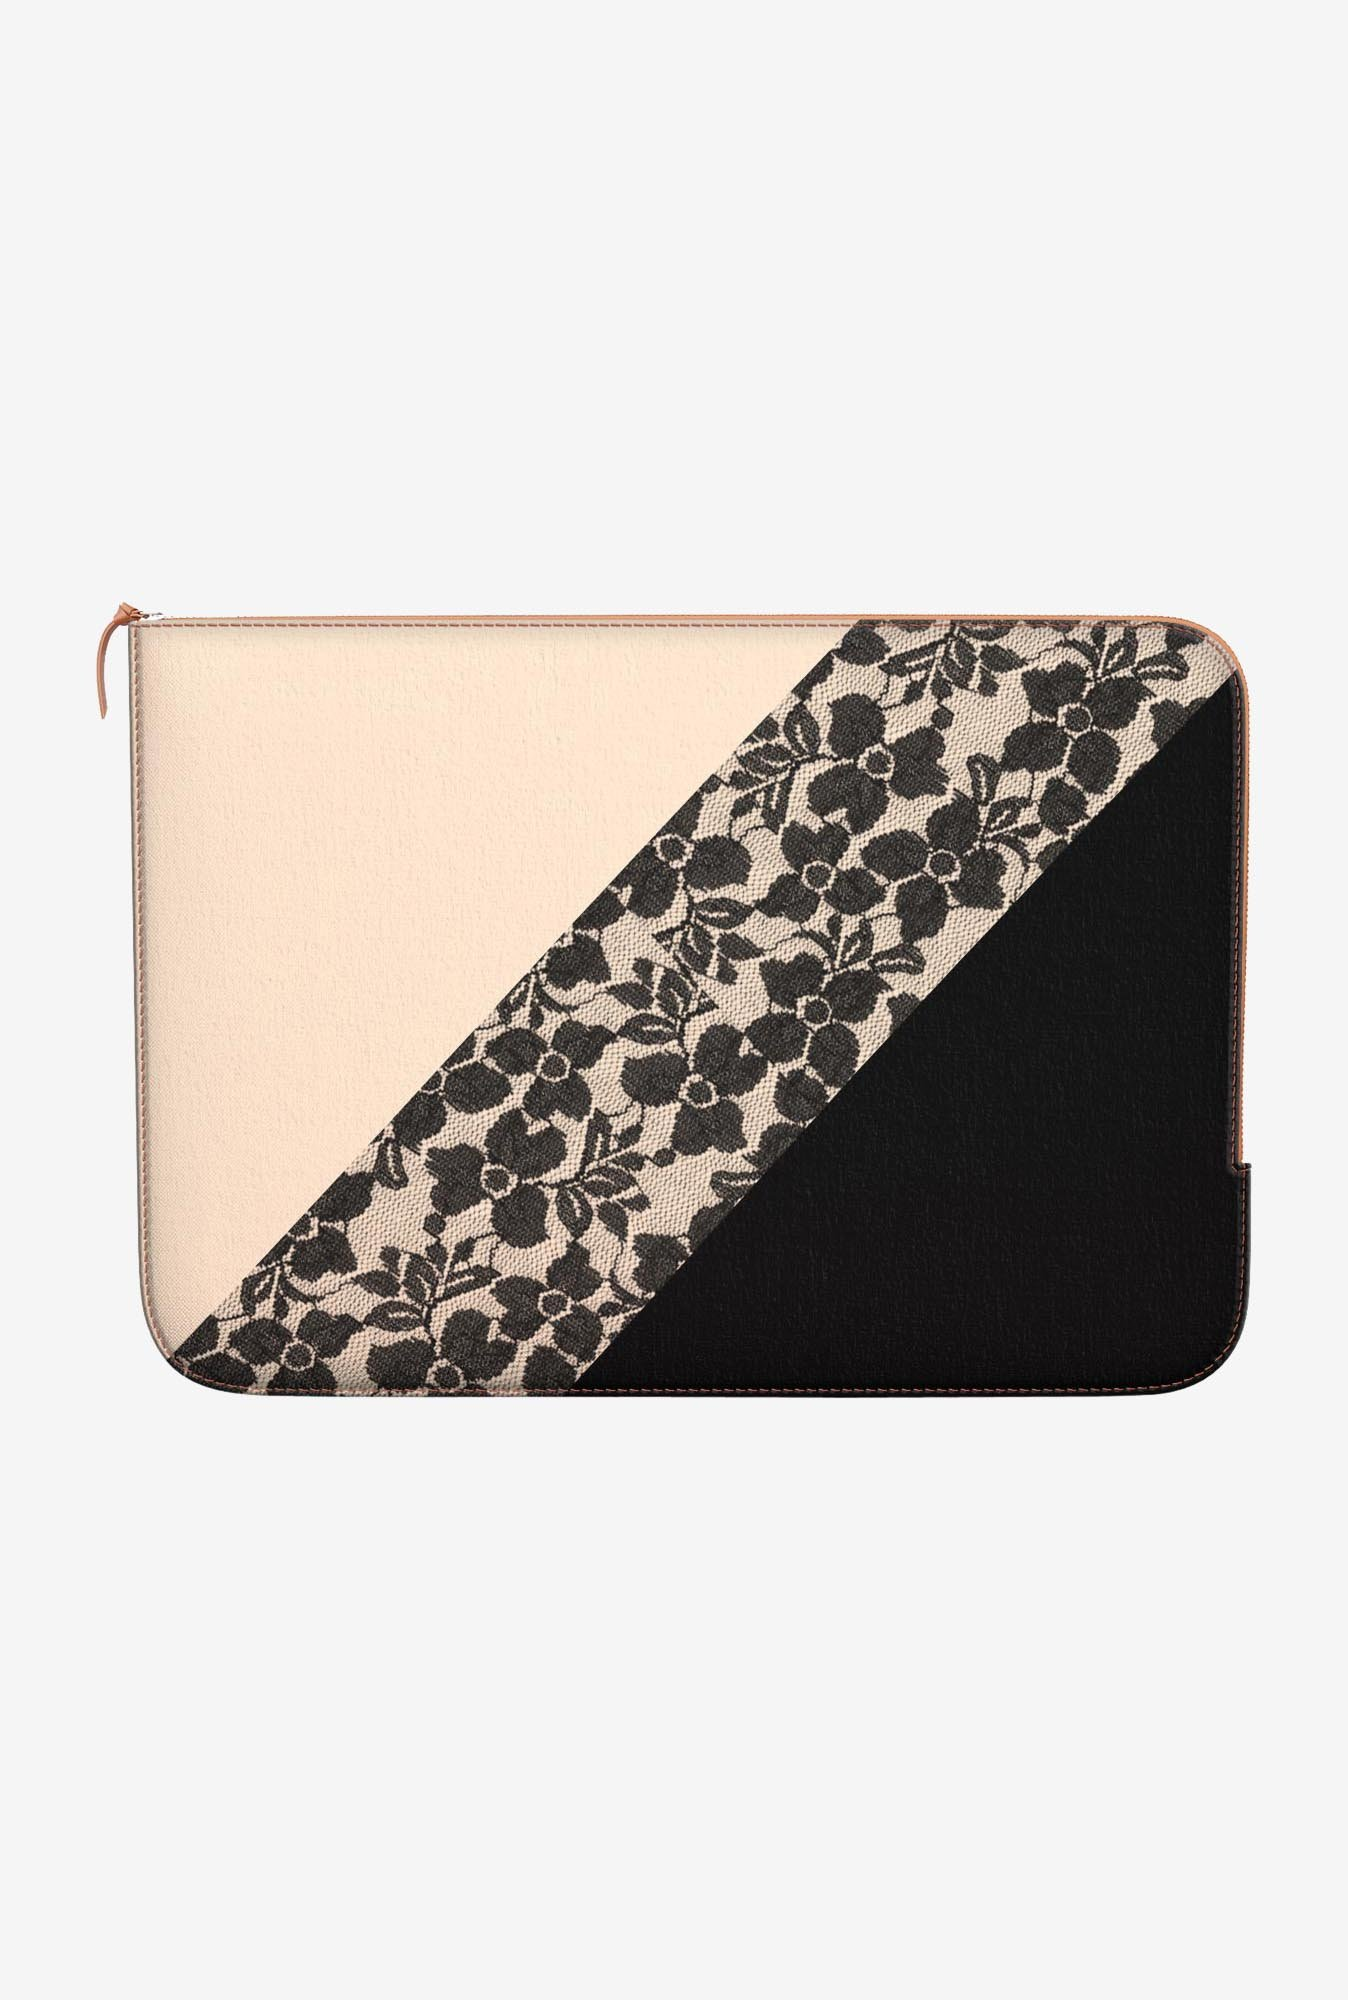 DailyObjects Lace Block MacBook Air 13 Zippered Sleeve